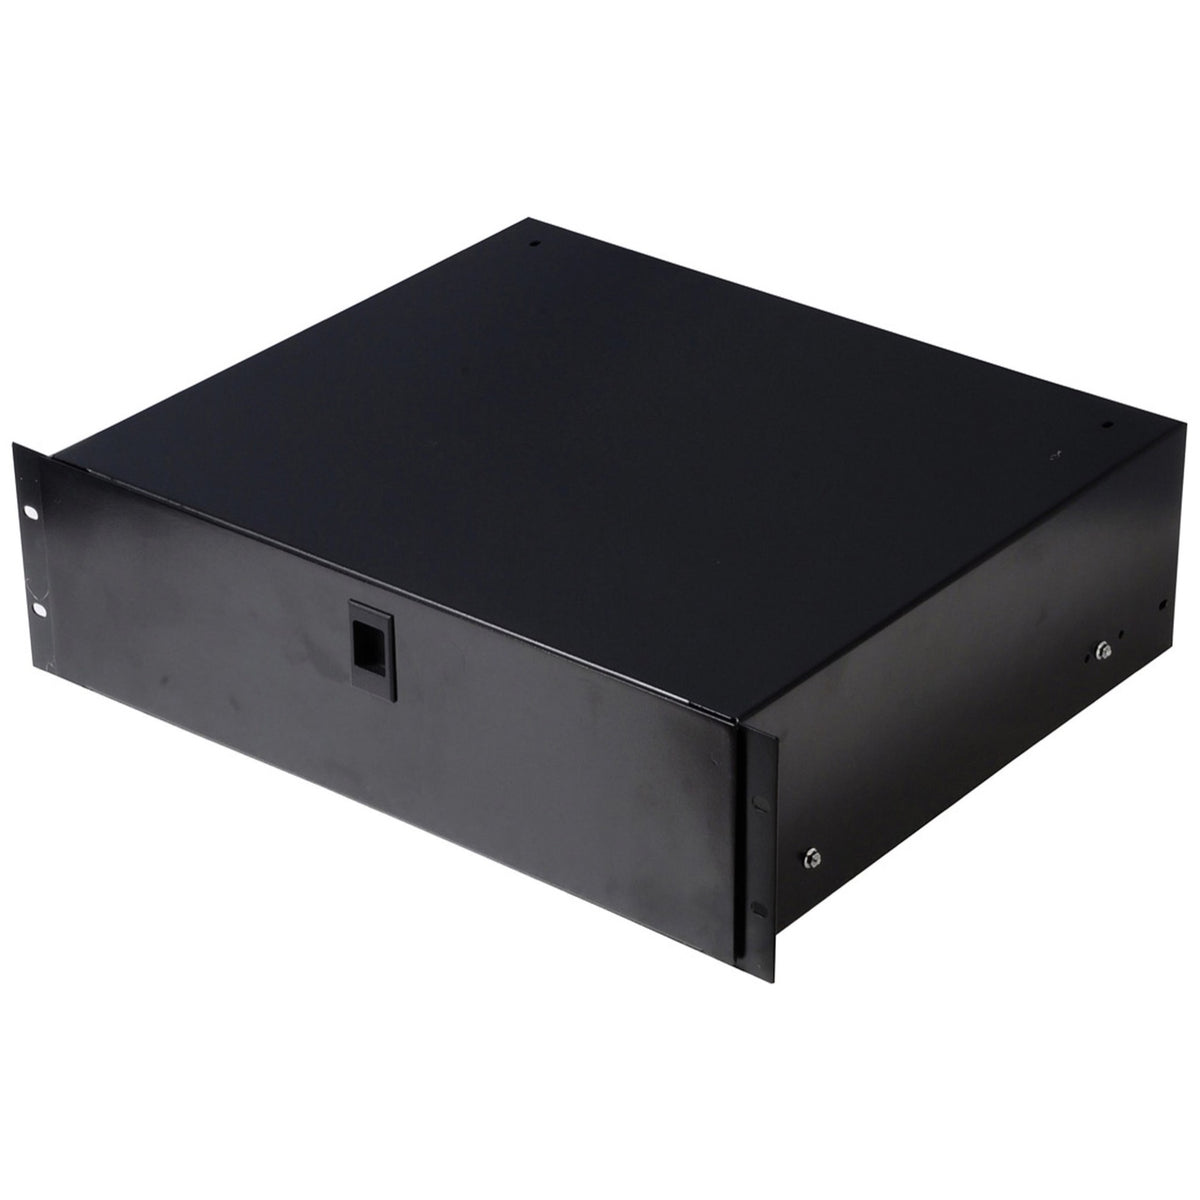 Gator GRW-DRWSH2 Shallow 2U Rack Drawer